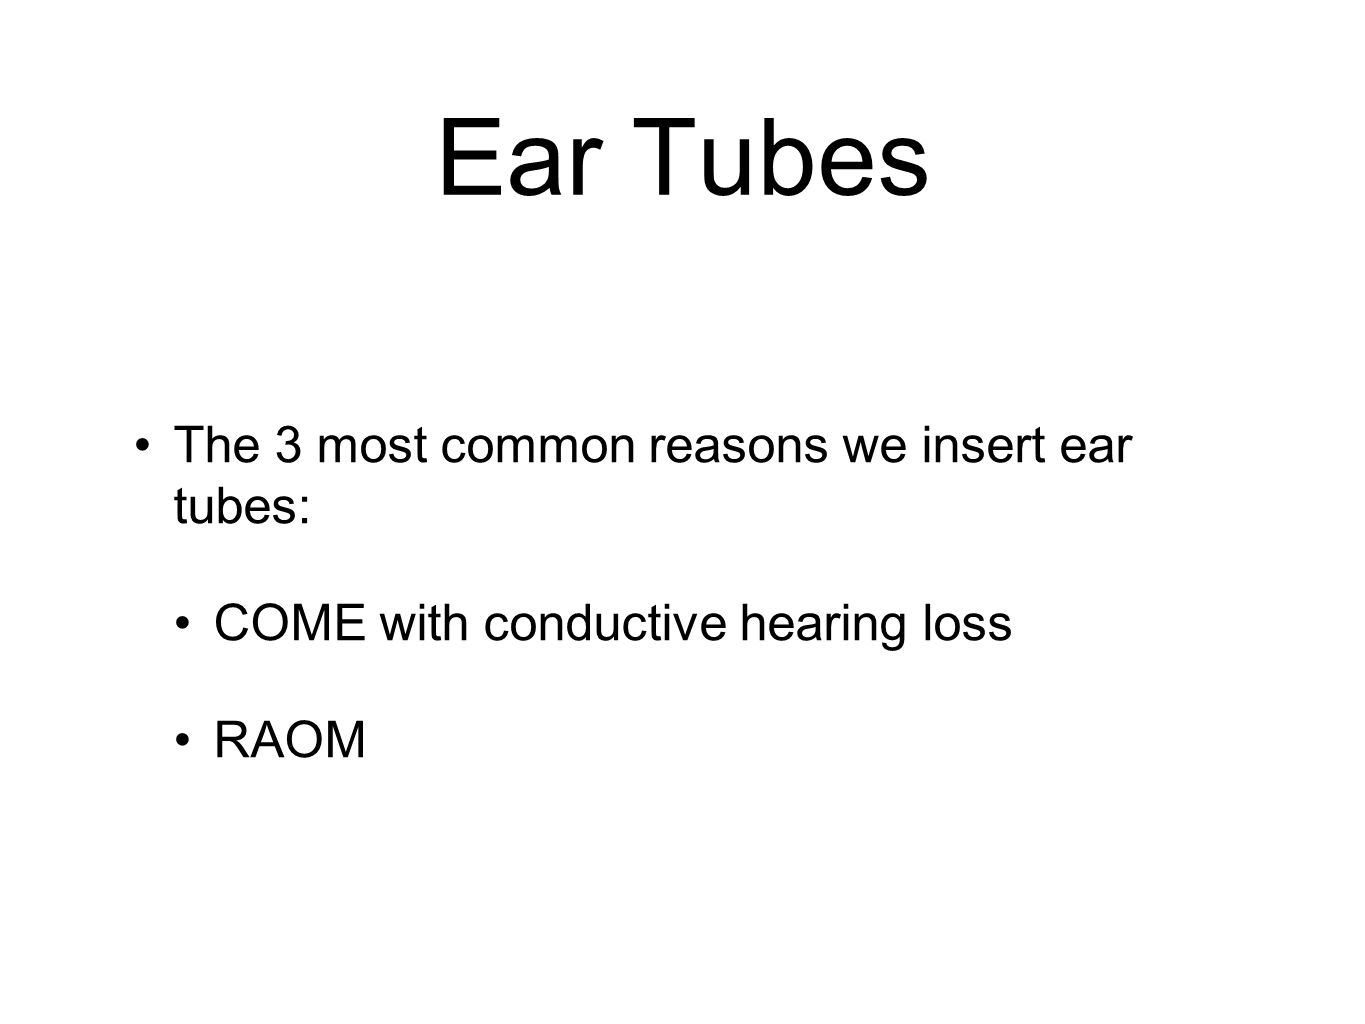 Ear Tubes The 3 most common reasons we insert ear tubes: